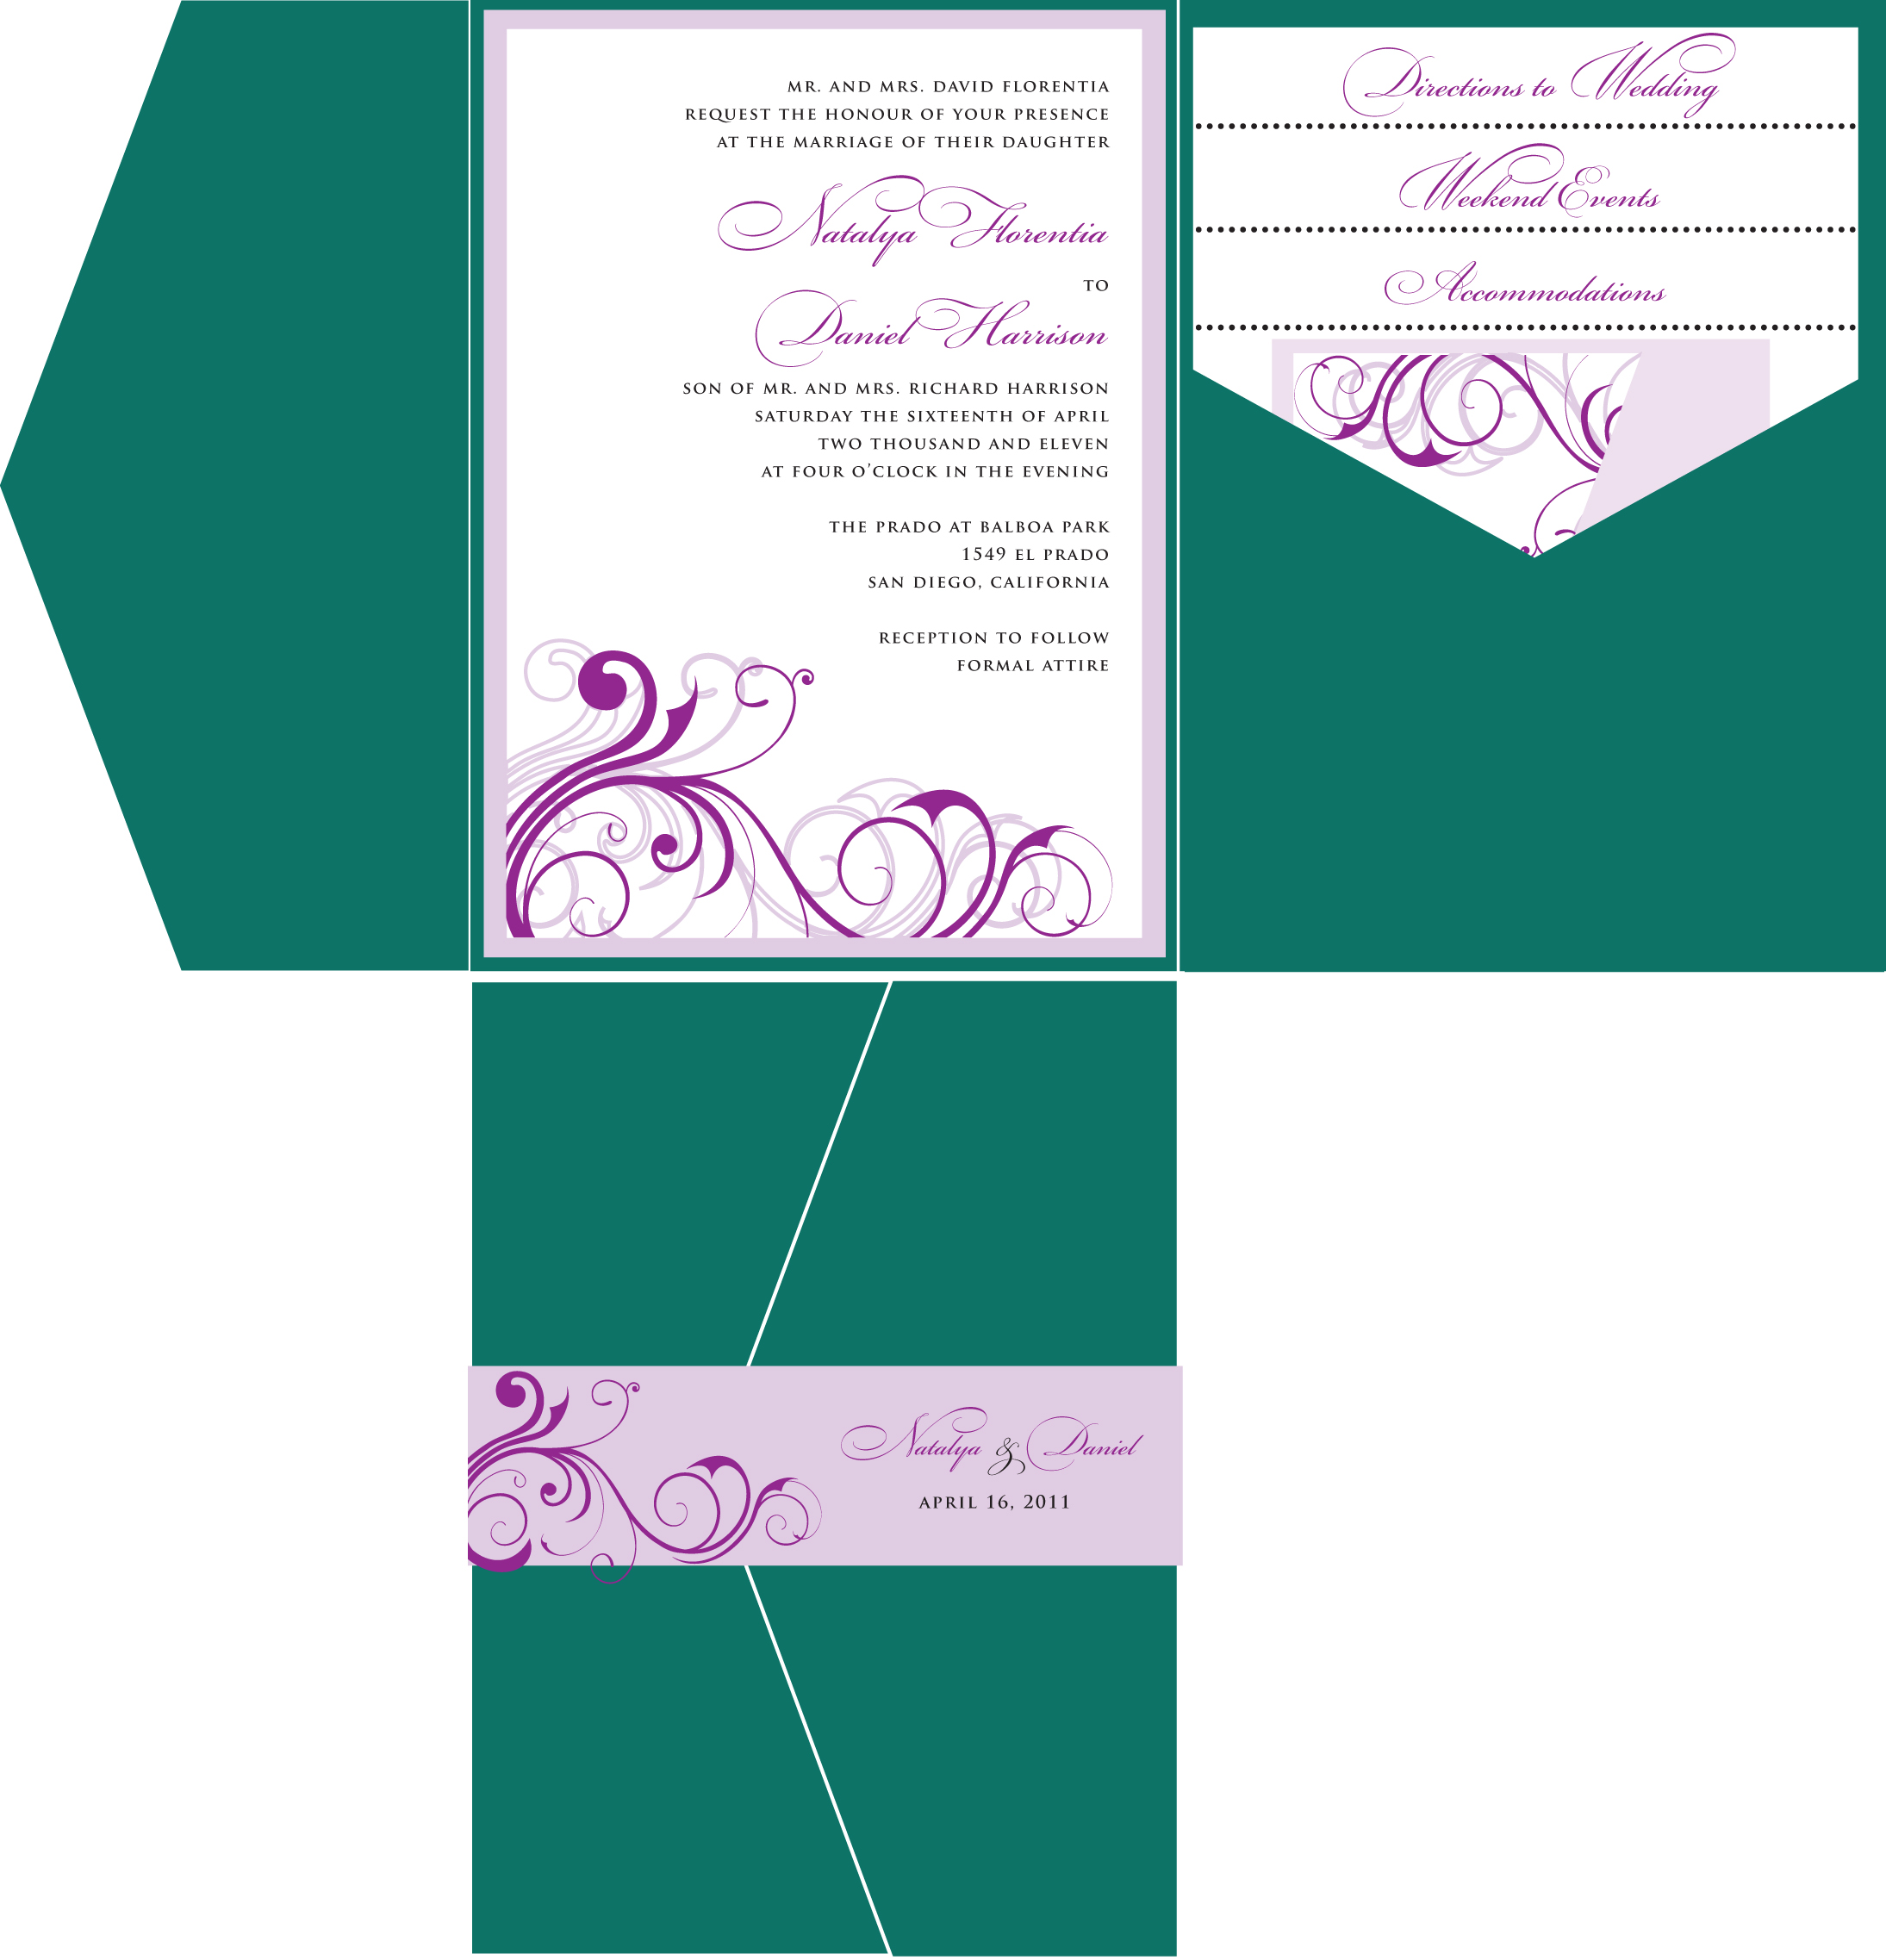 Emerald green purple wedding invitation pocket fold style a emerald green and lavender wedding invitation solutioingenieria Images